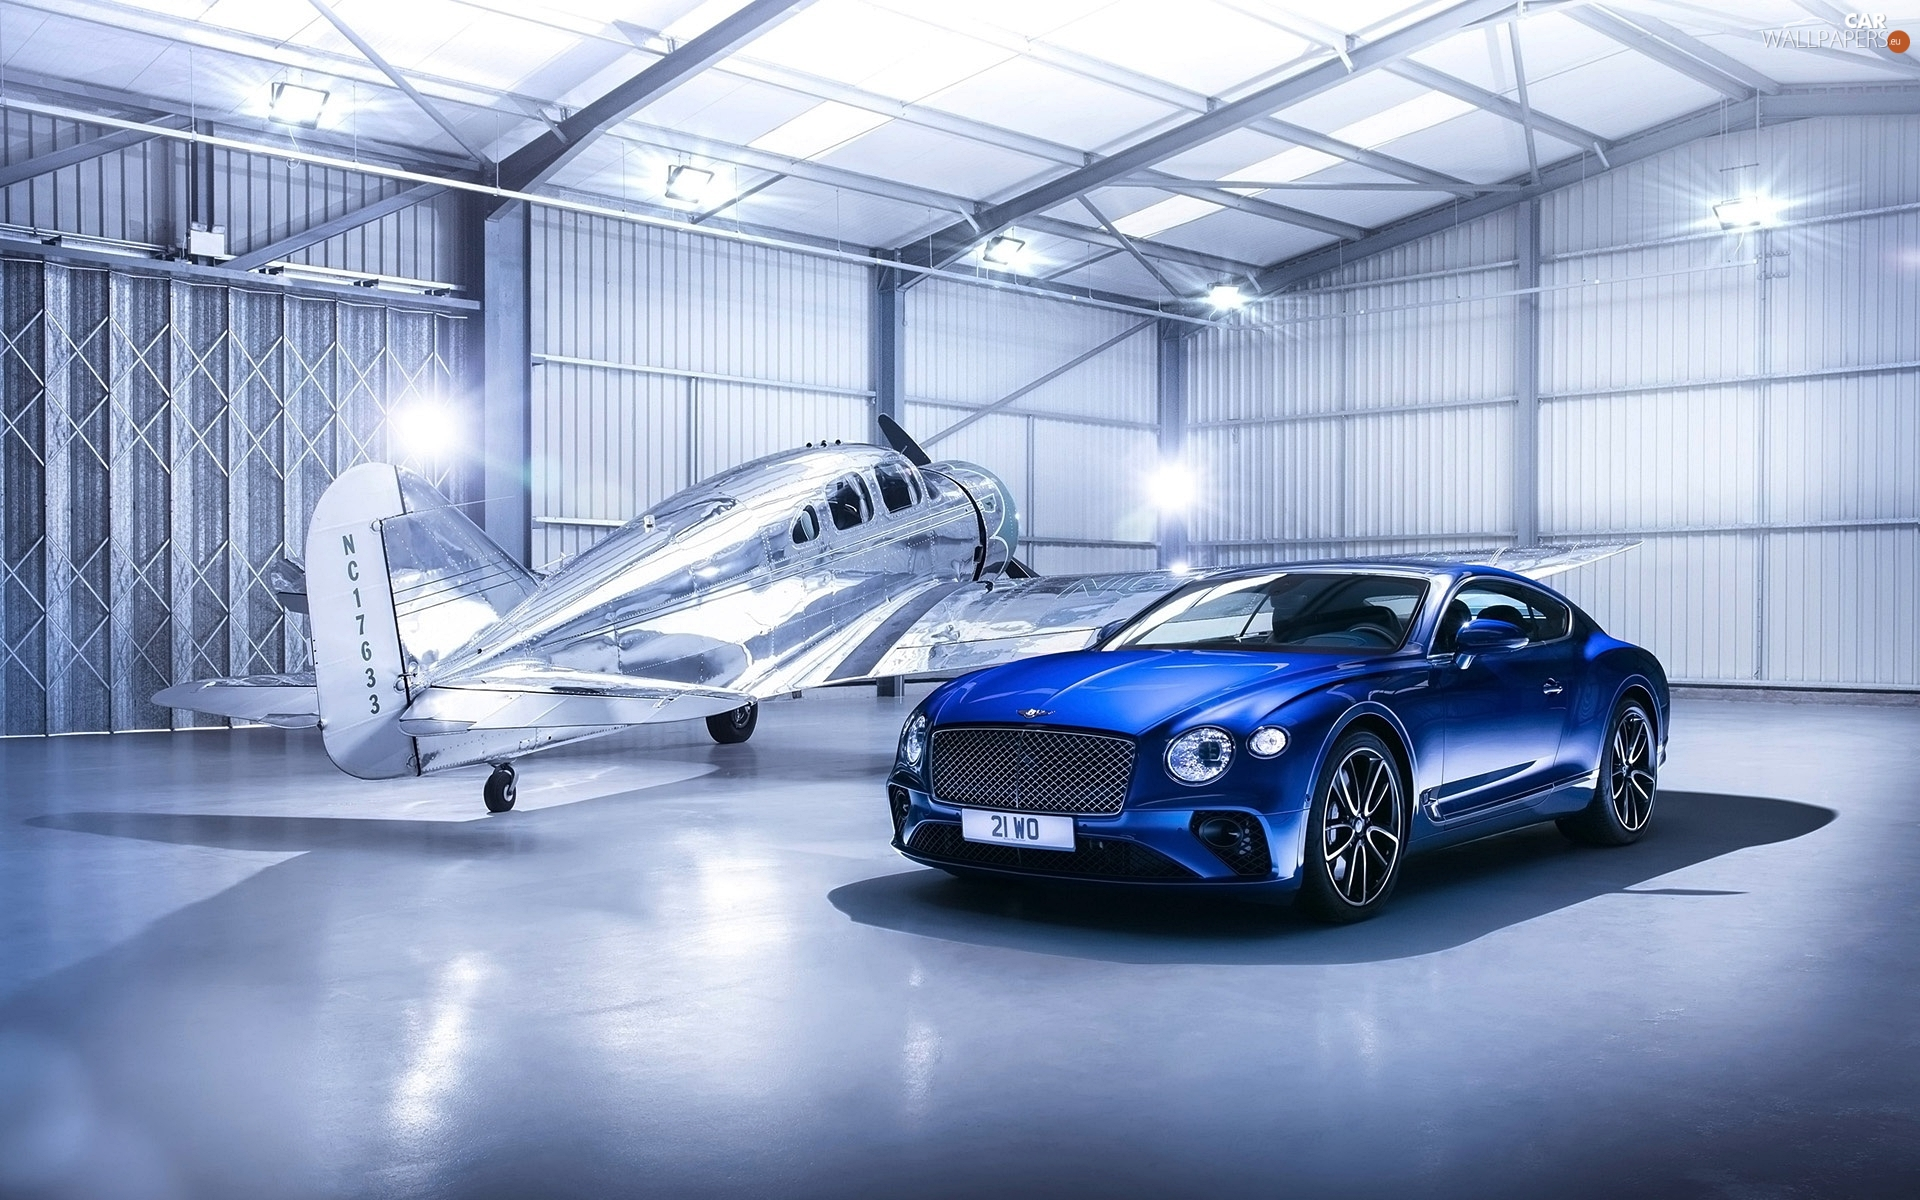 Bentley Continental GT Coup?, plane, Hangar, 2018